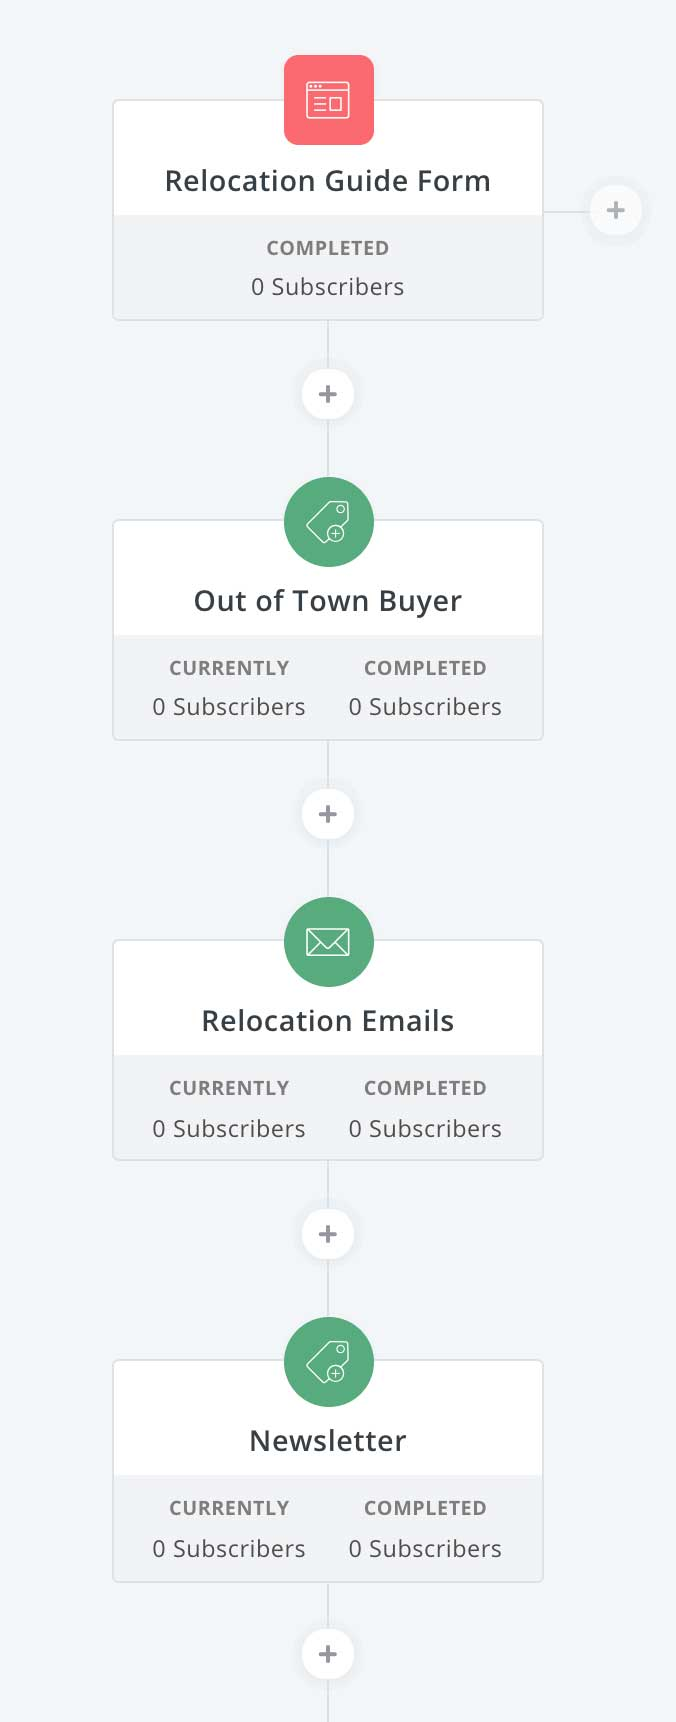 Relocation guide example